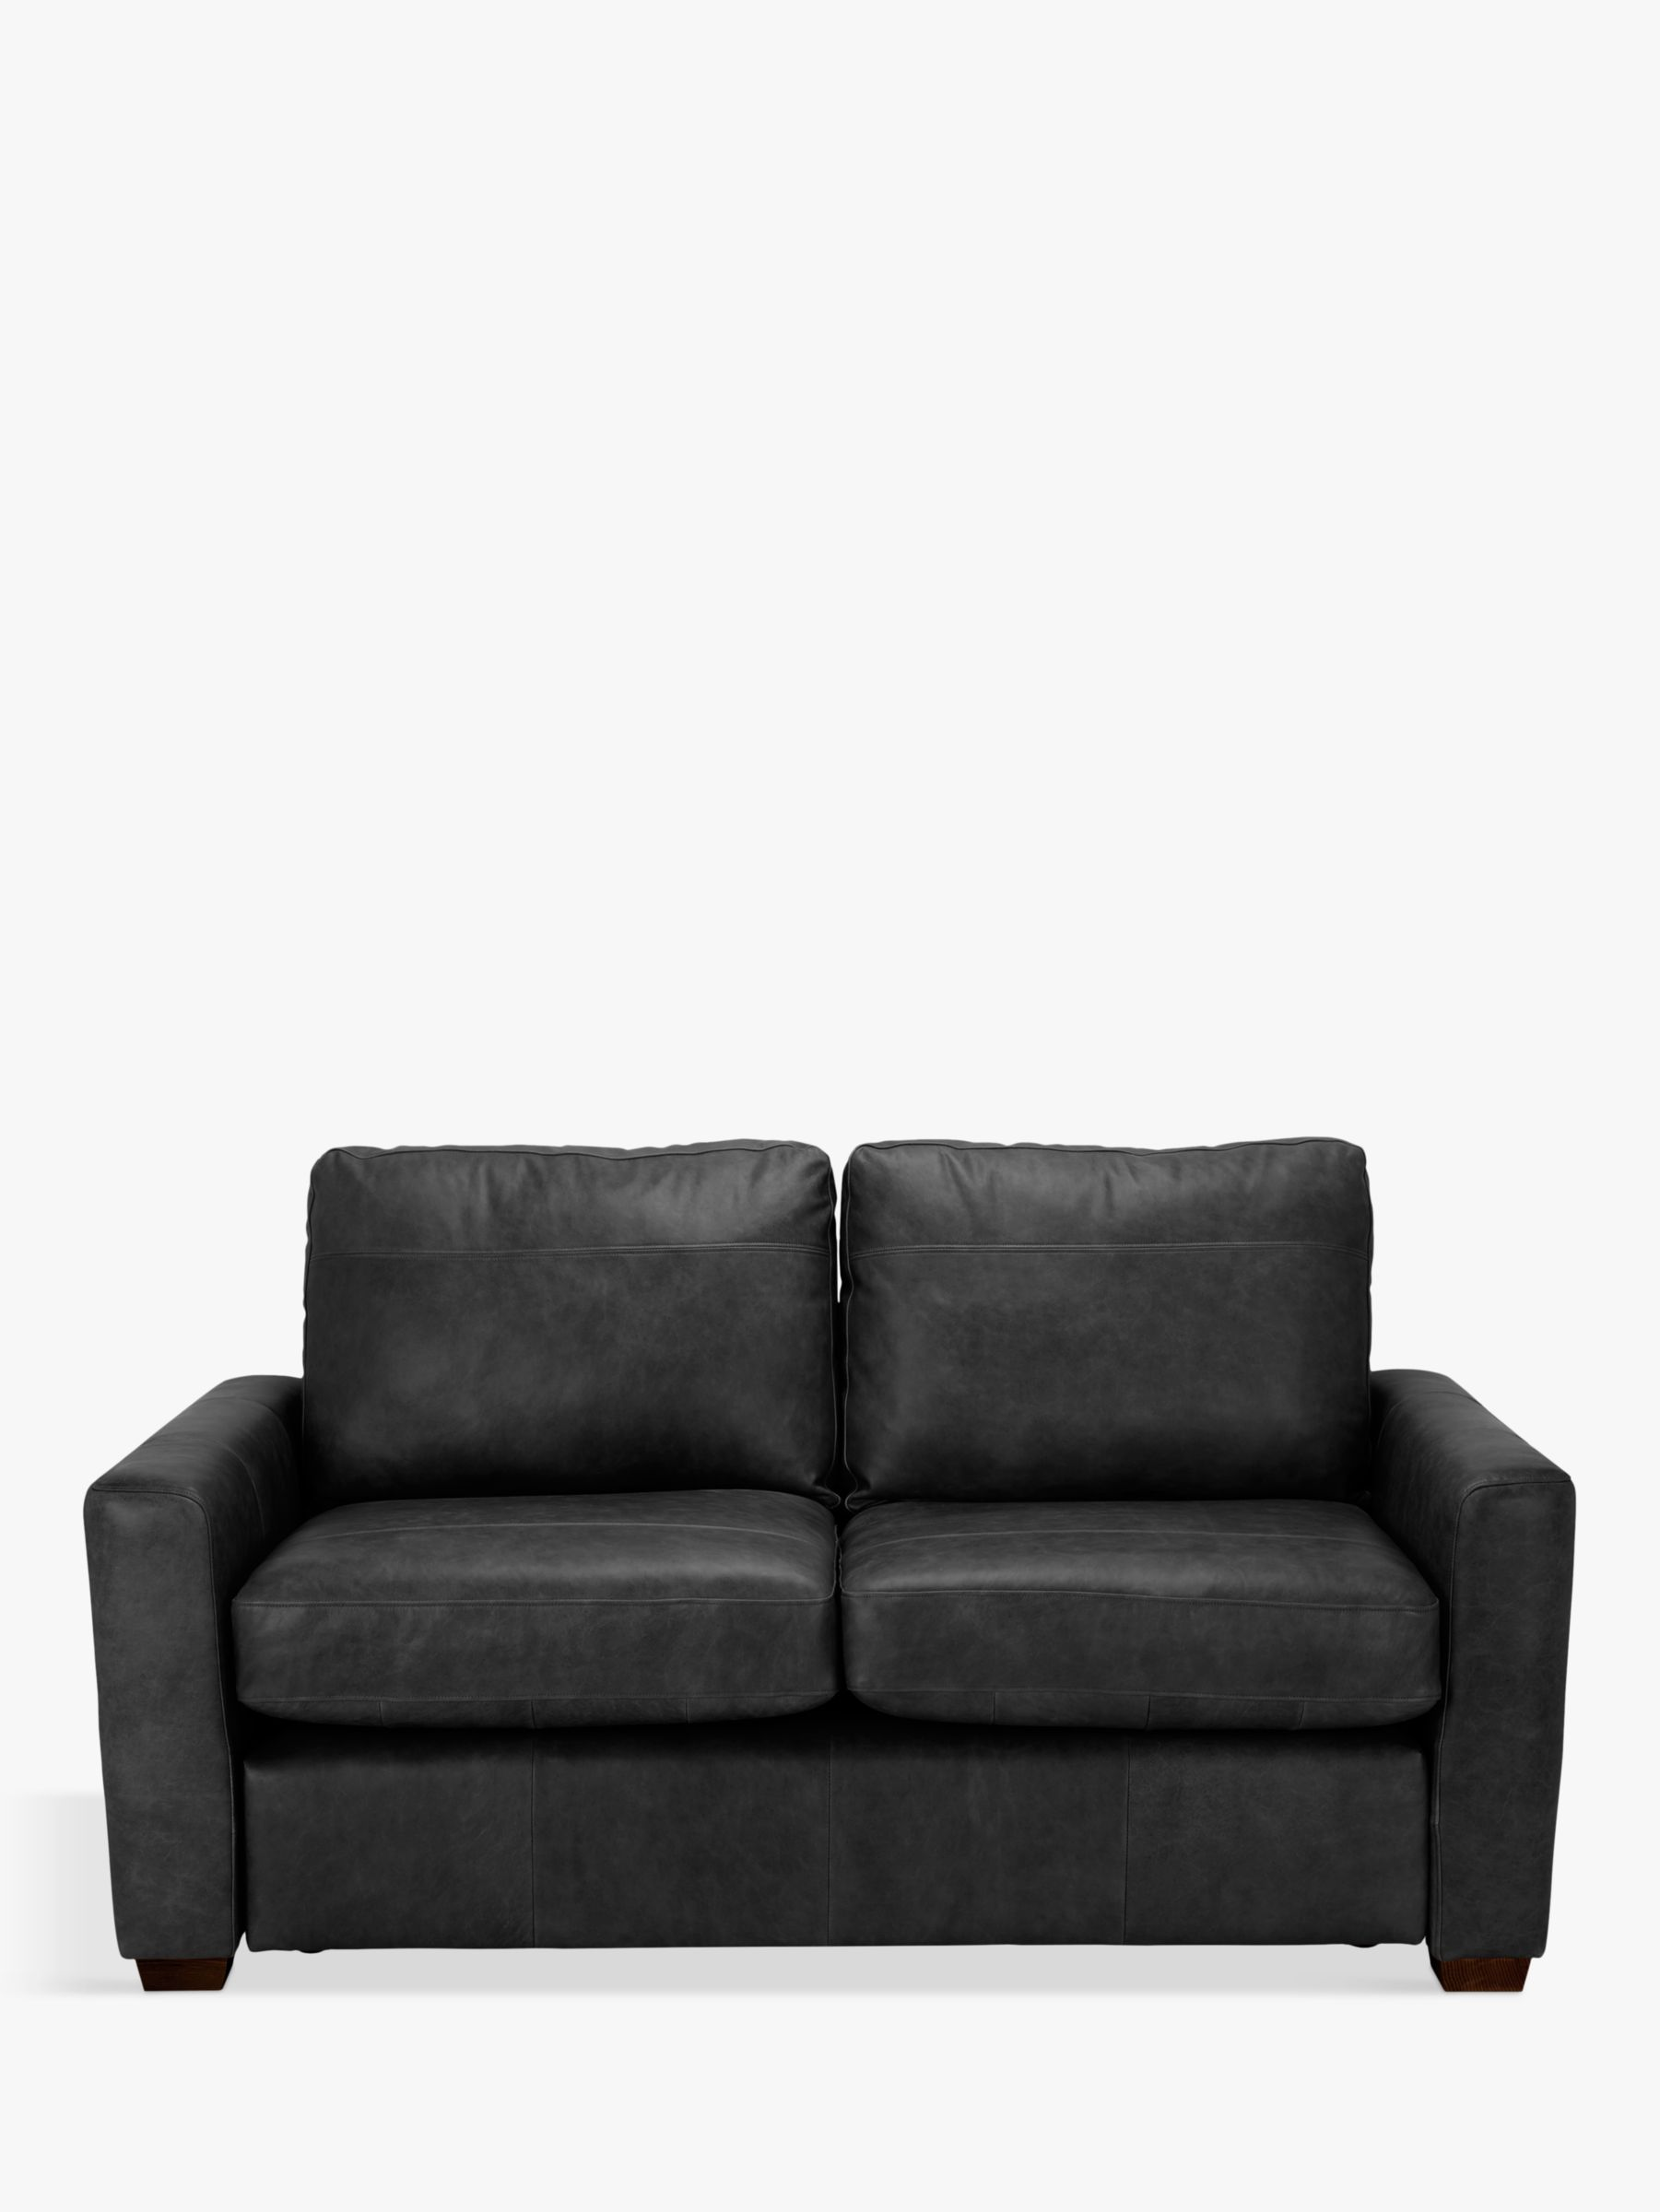 Picture of: House By John Lewis Oliver Small 2 Seater Leather Sofa Dark Leg Contempo Black At John Lewis Partners